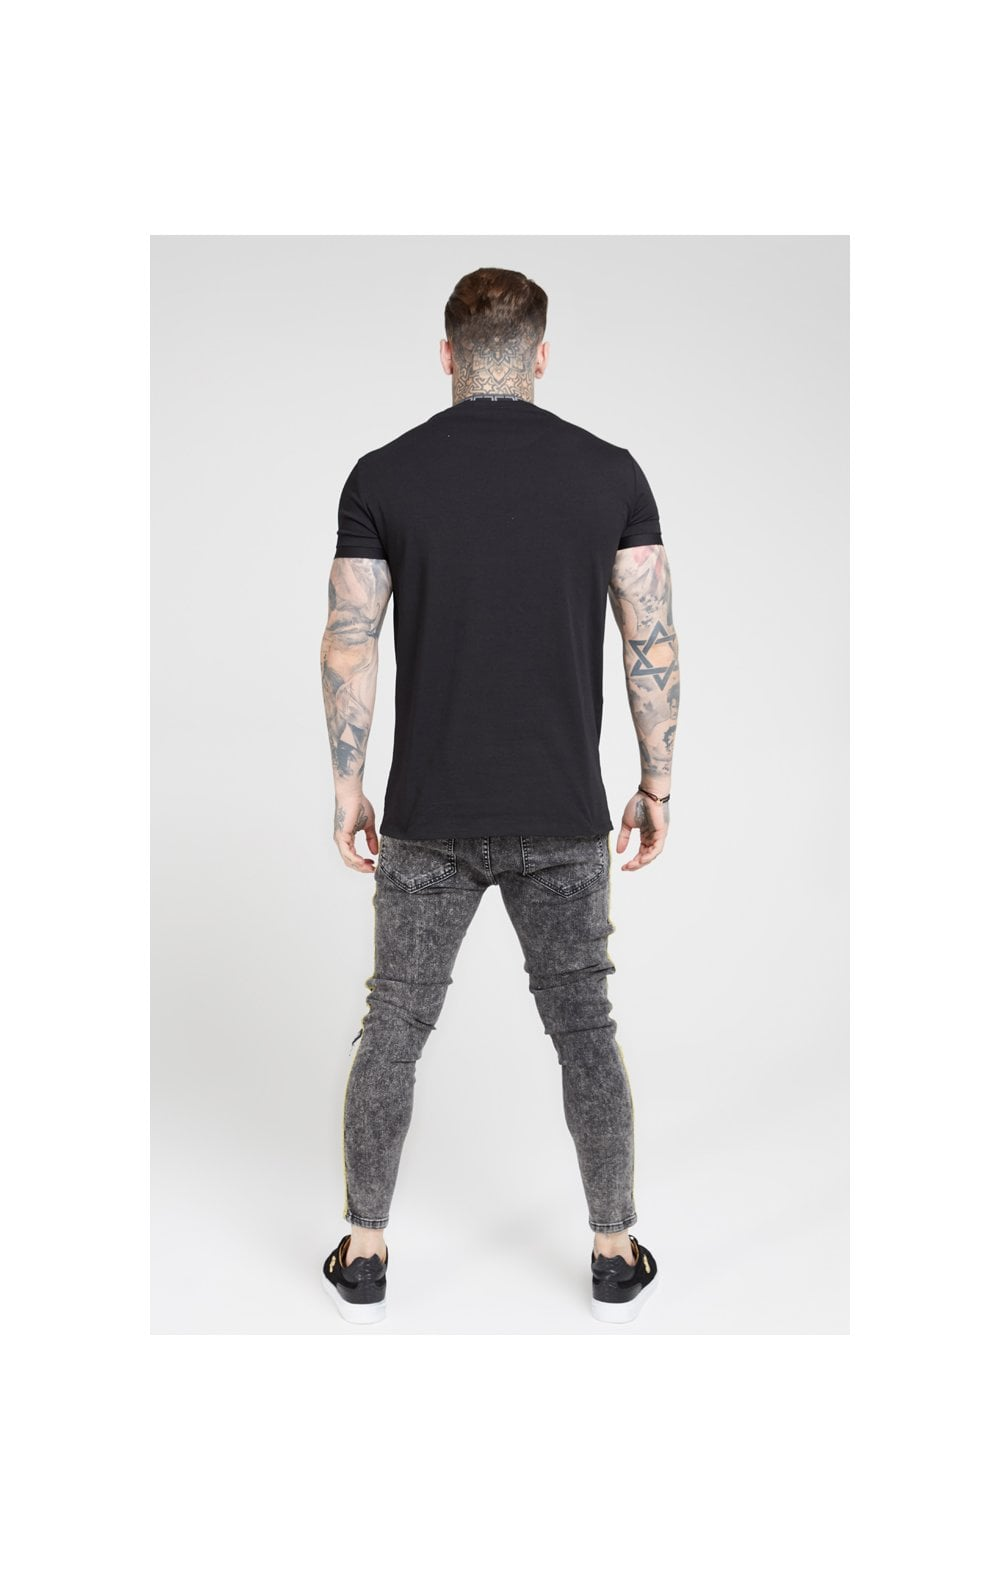 SikSilk Distressed Skinny Taped Denims - Faded Grey (5)